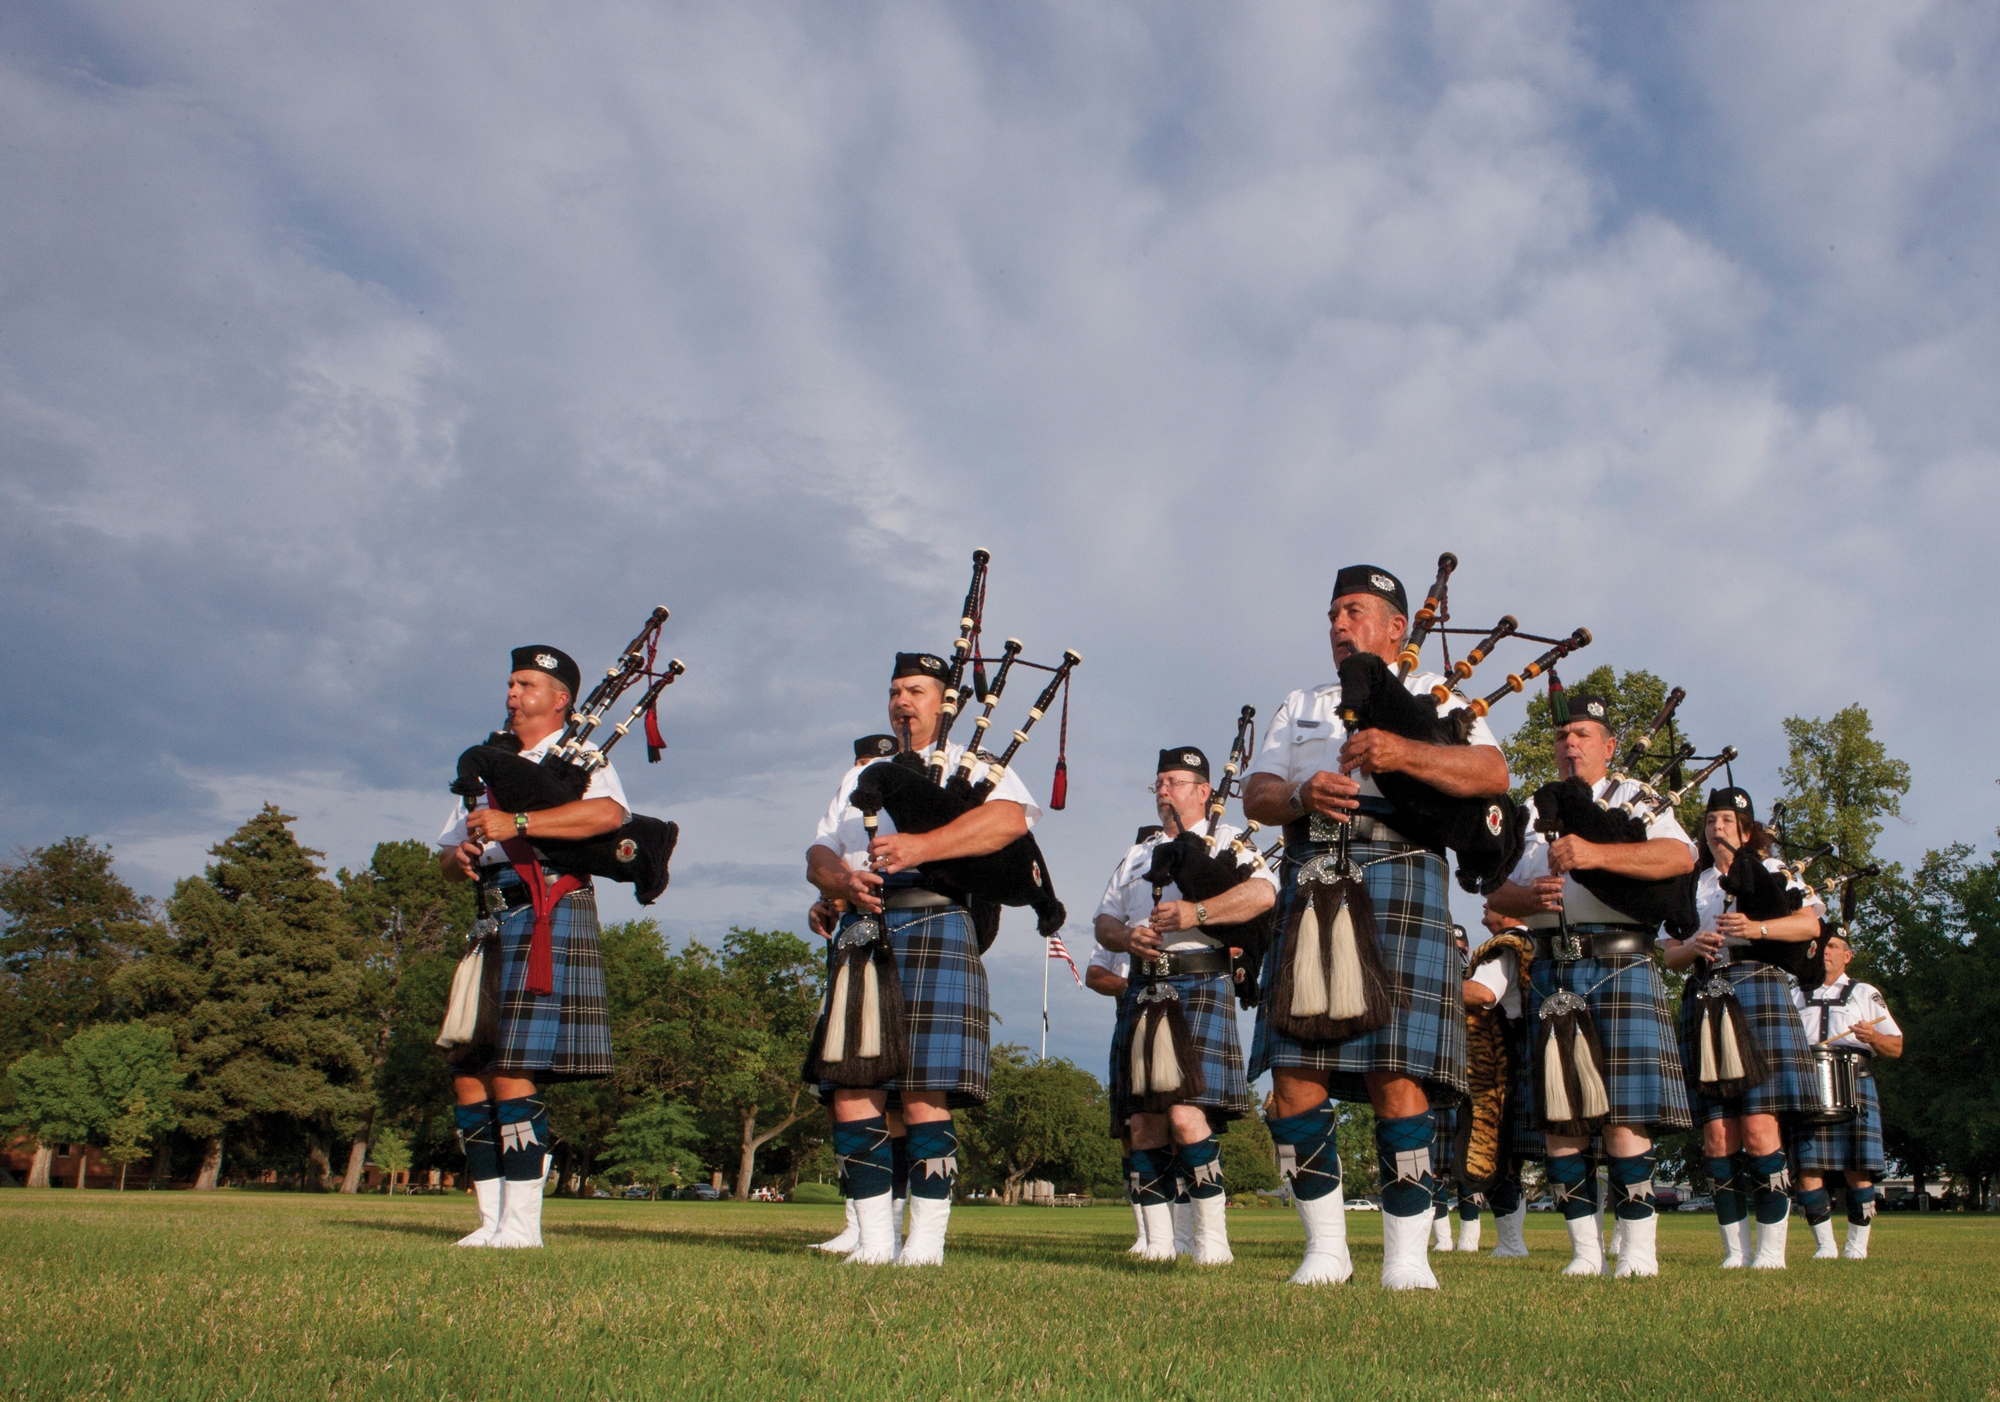 Ron Lopez Credits His Gene Pool for His Love of Bagpipes